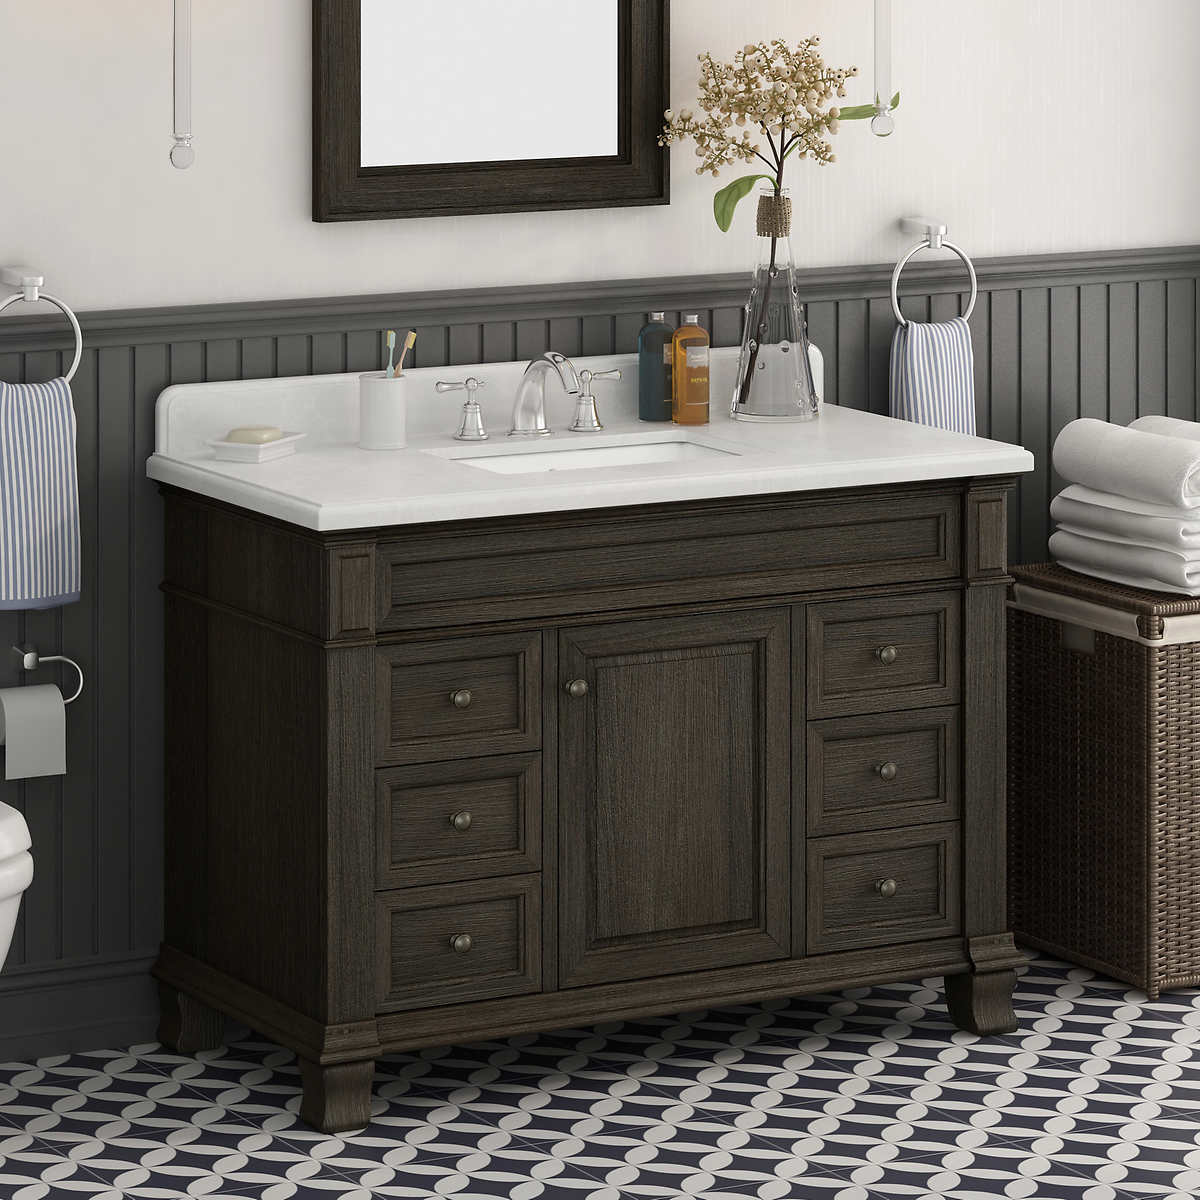 Single Sink Vanities Costco - Bathroom sink with vanity